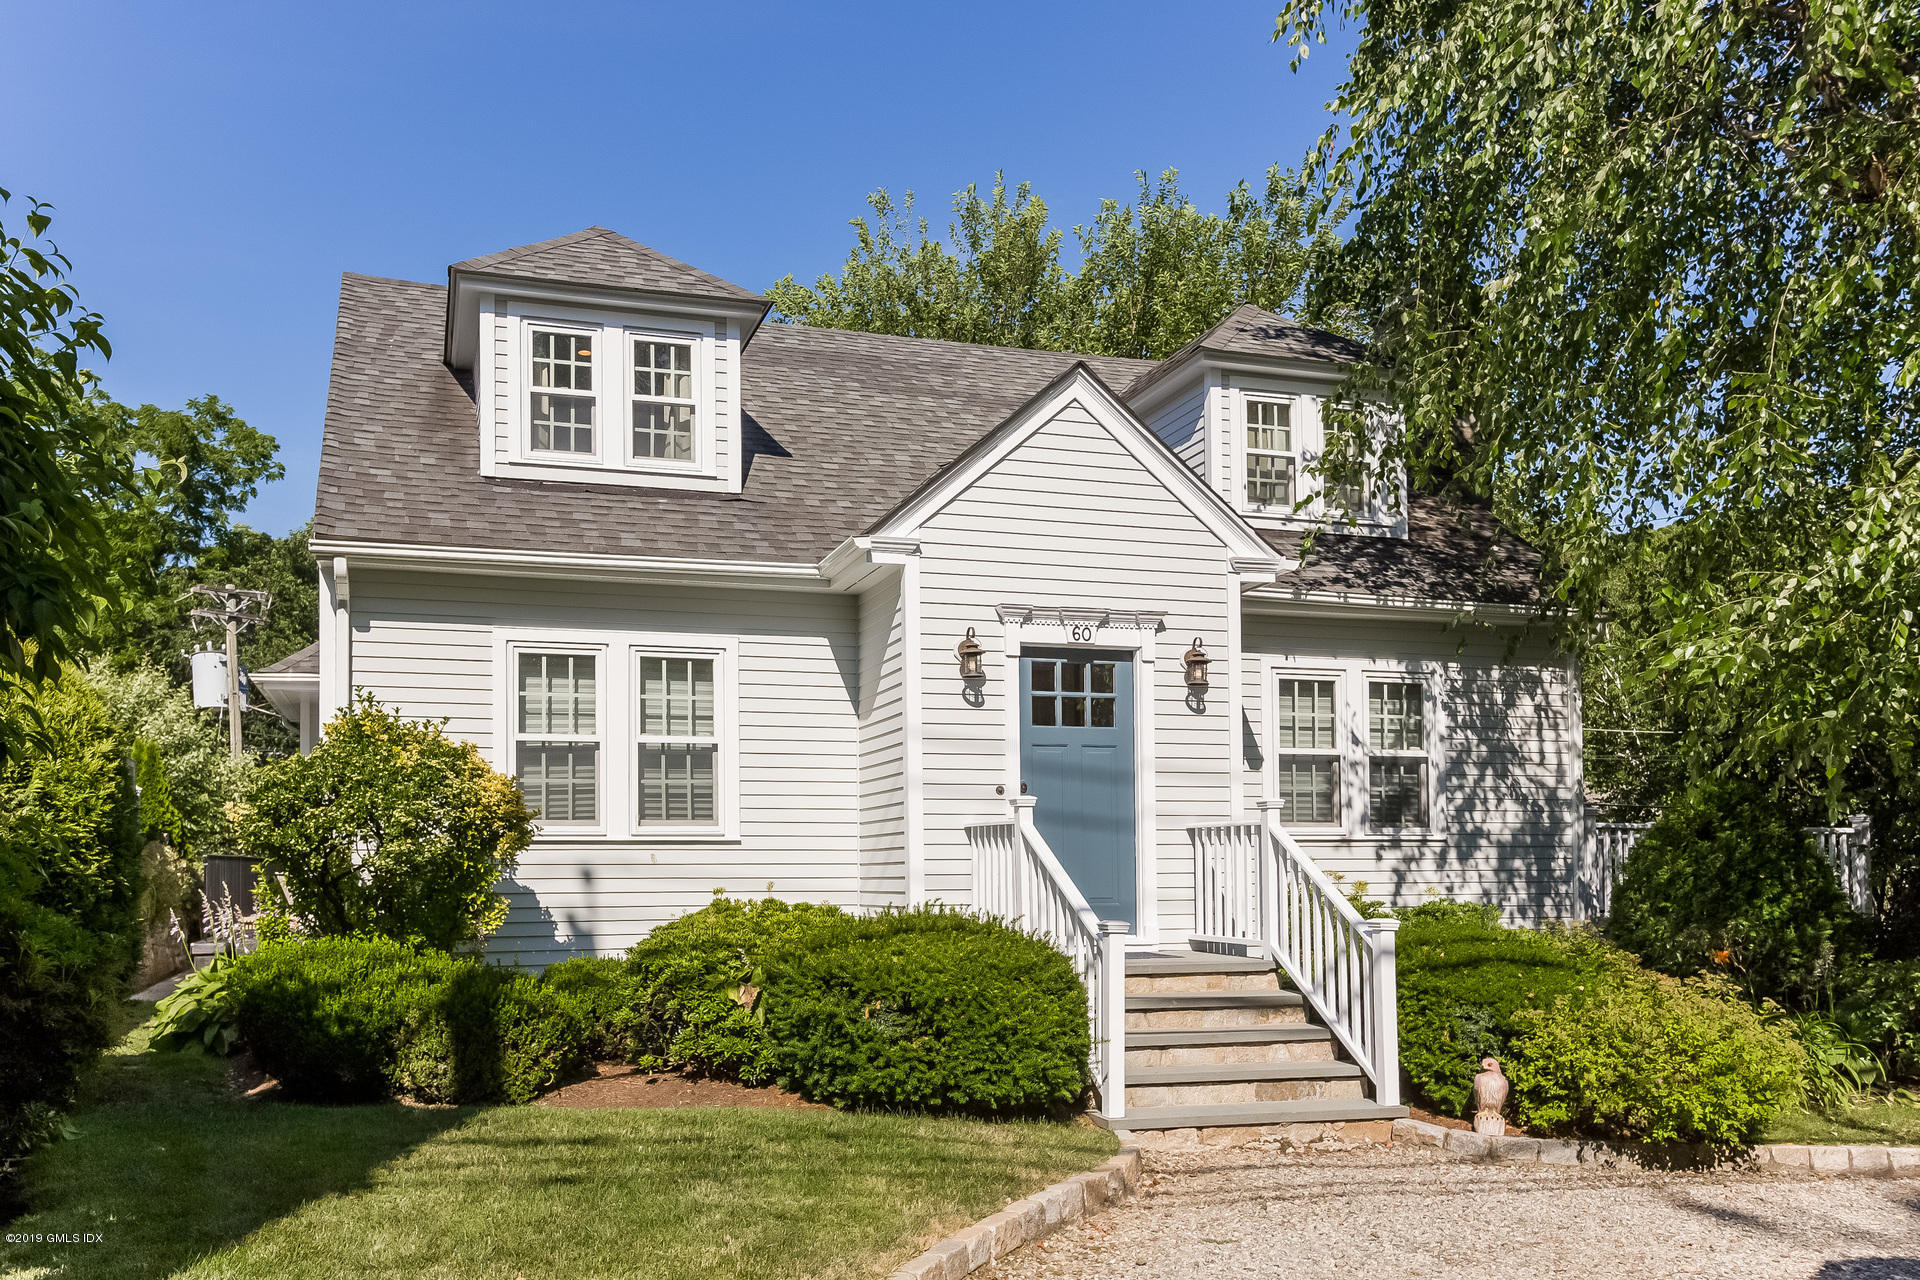 60 Sound Beach Avenue,Old Greenwich,Connecticut 06870,3 Bedrooms Bedrooms,3 BathroomsBathrooms,Single family,Sound Beach,105855